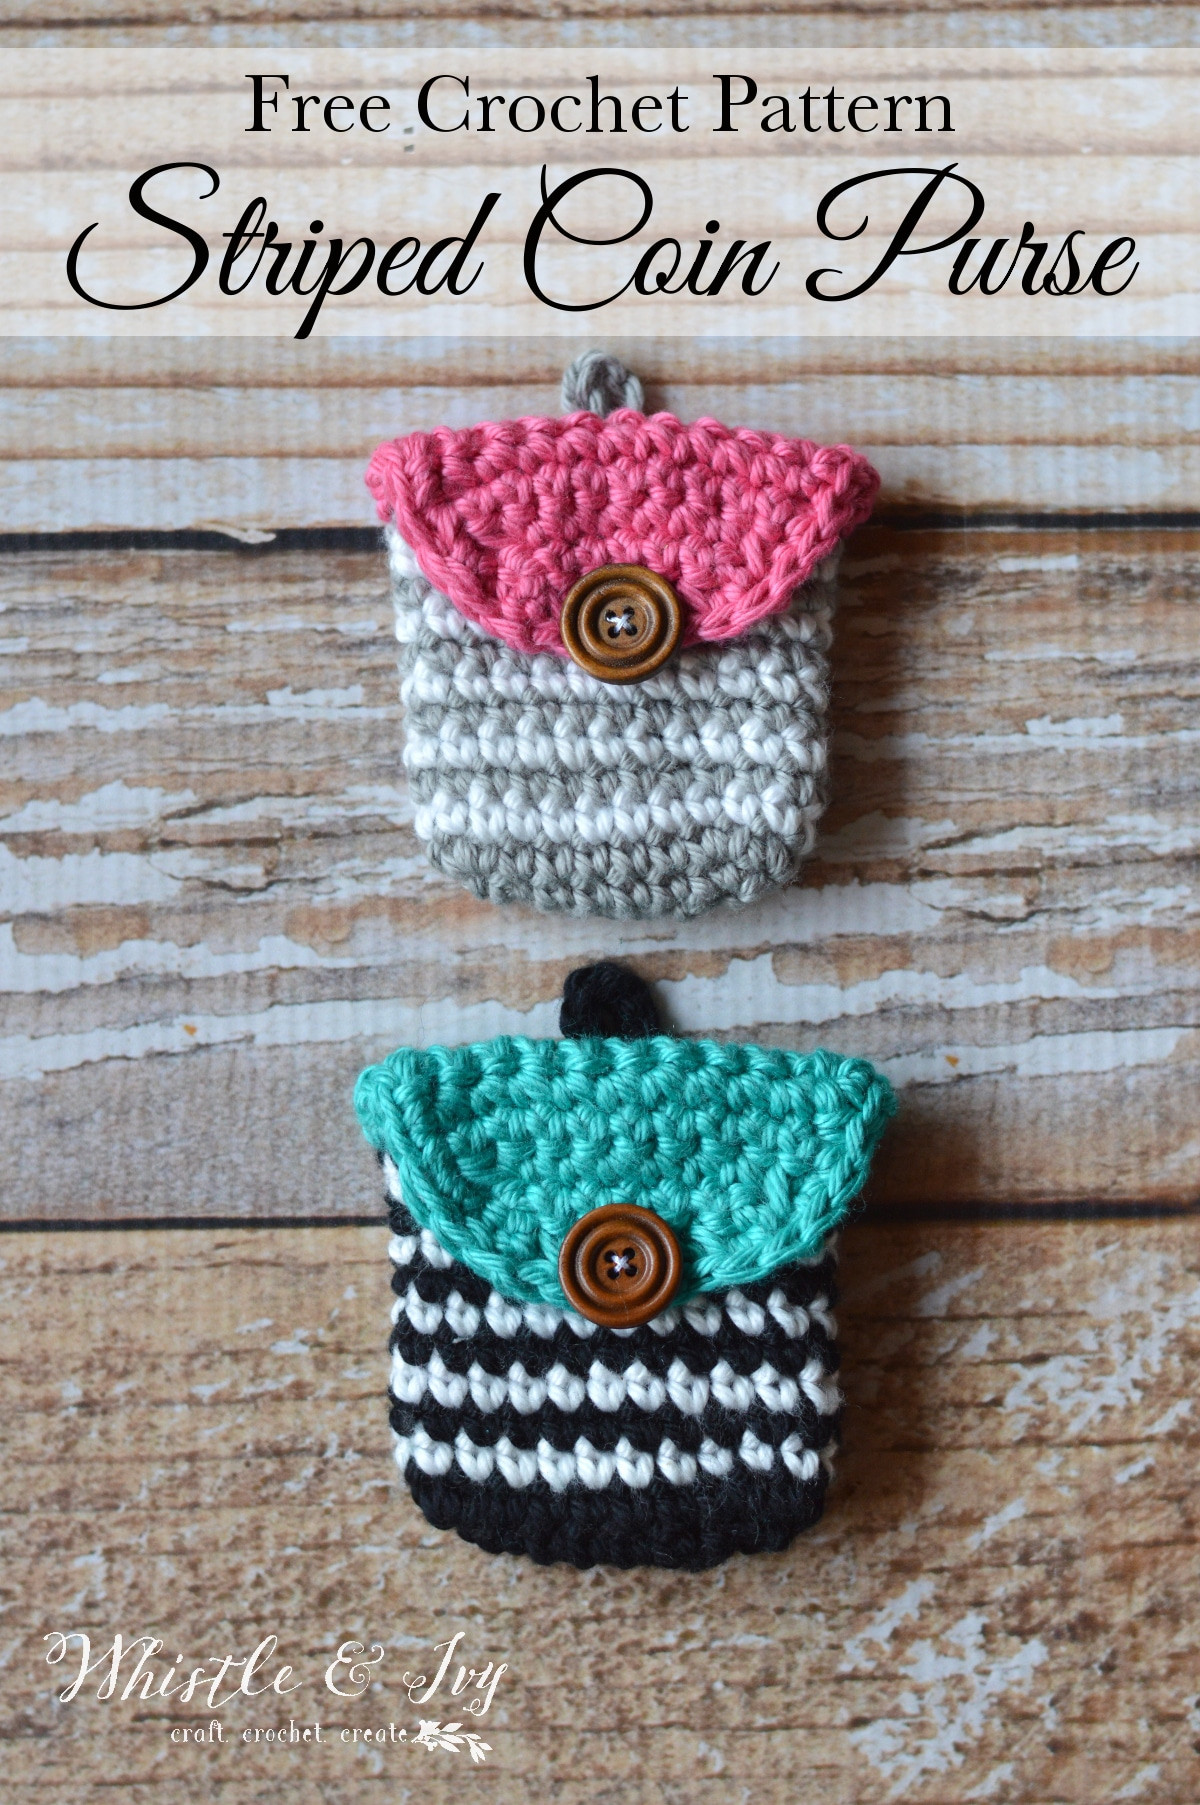 Crochet Purse Patterns Inspirational Crochet Striped Coin Purse Whistle and Ivy Of Attractive 46 Photos Crochet Purse Patterns